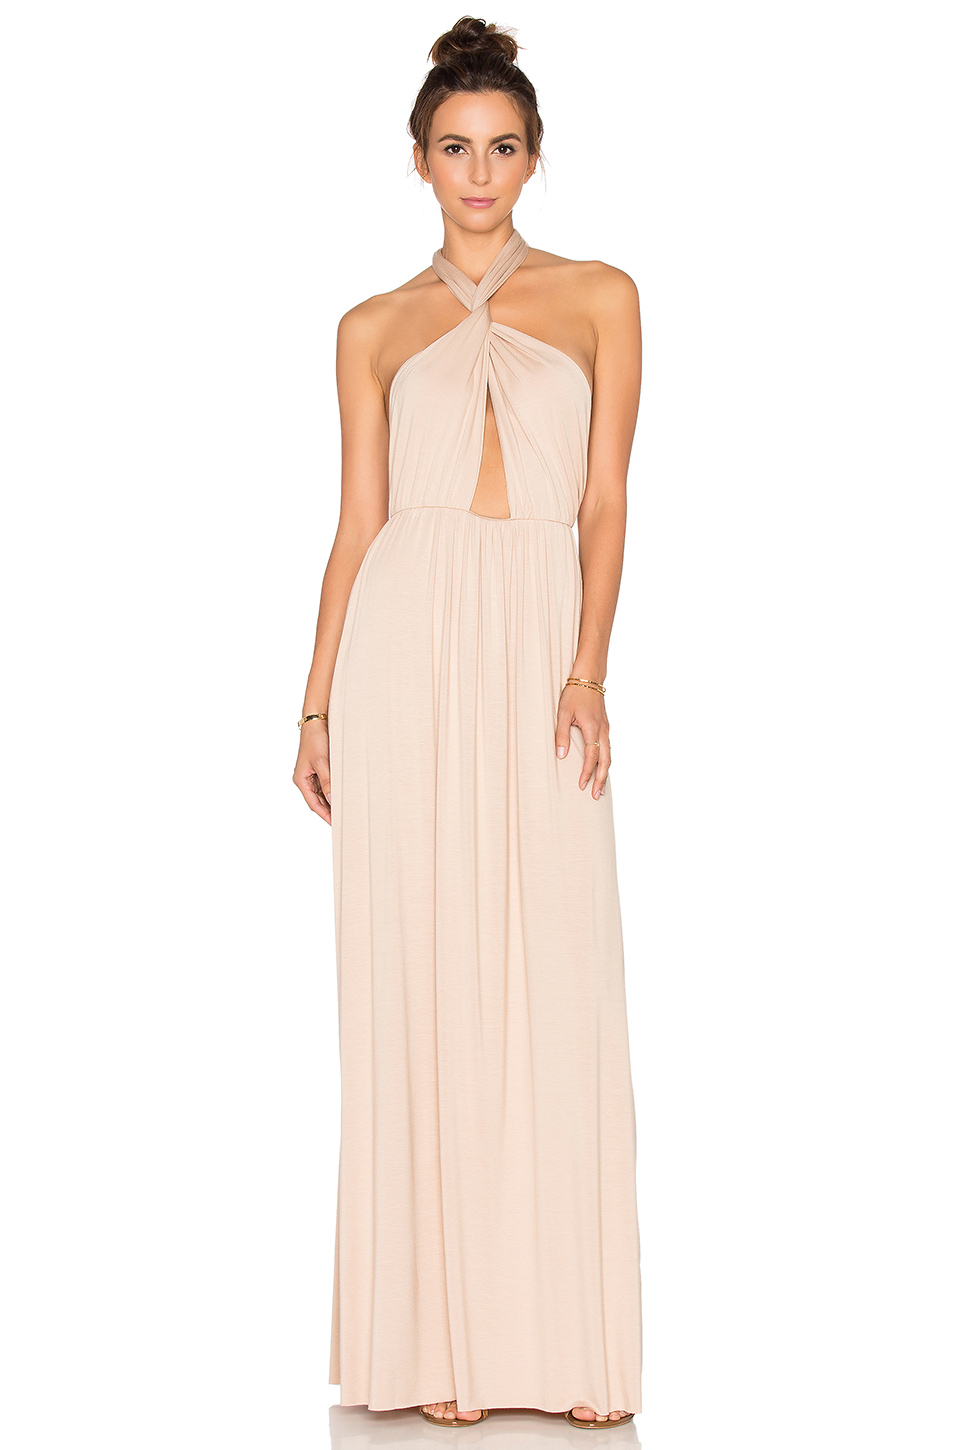 Junior Dresses. Get dressed up for the occasion with the hottest in juniors dresses in a variety of styles. Whether you're heading to homecoming or prom, or just hanging out with the girls on the weekend, find casual to dressy designs featuring the season's hottest trends.